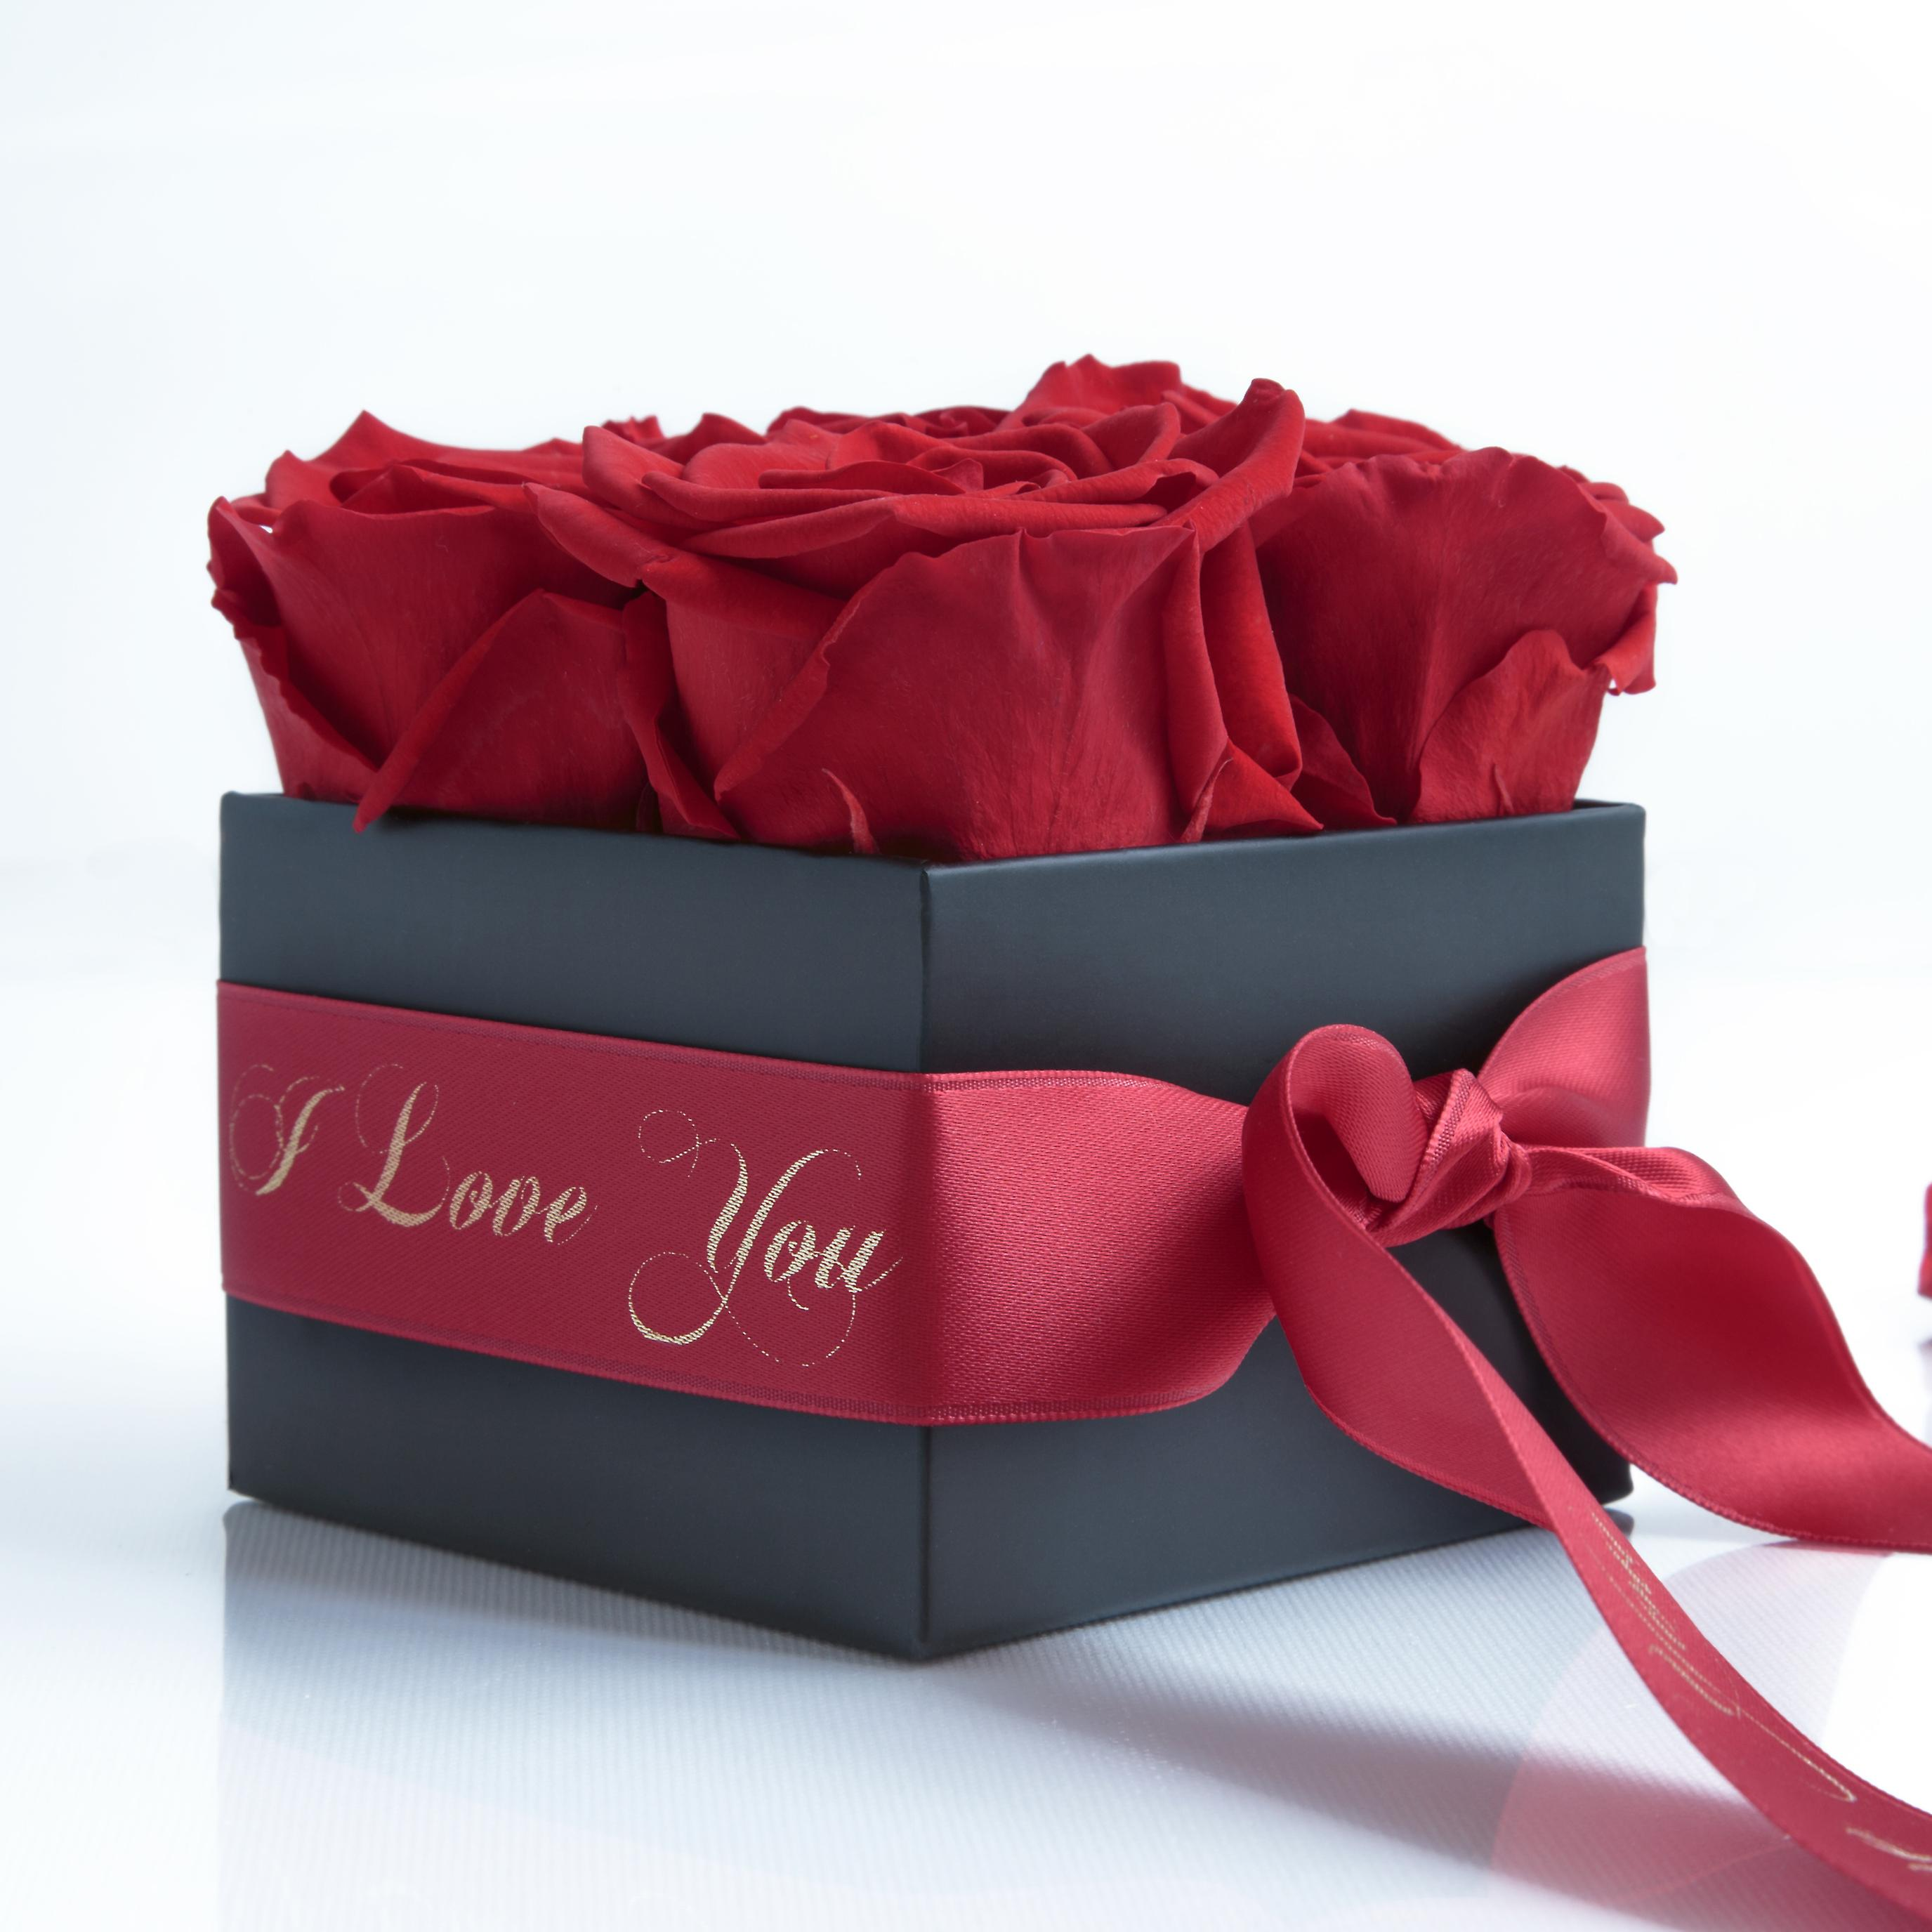 I LOVE red and satin ribbon roses preserved YOU box with 4 shelf life 3 years